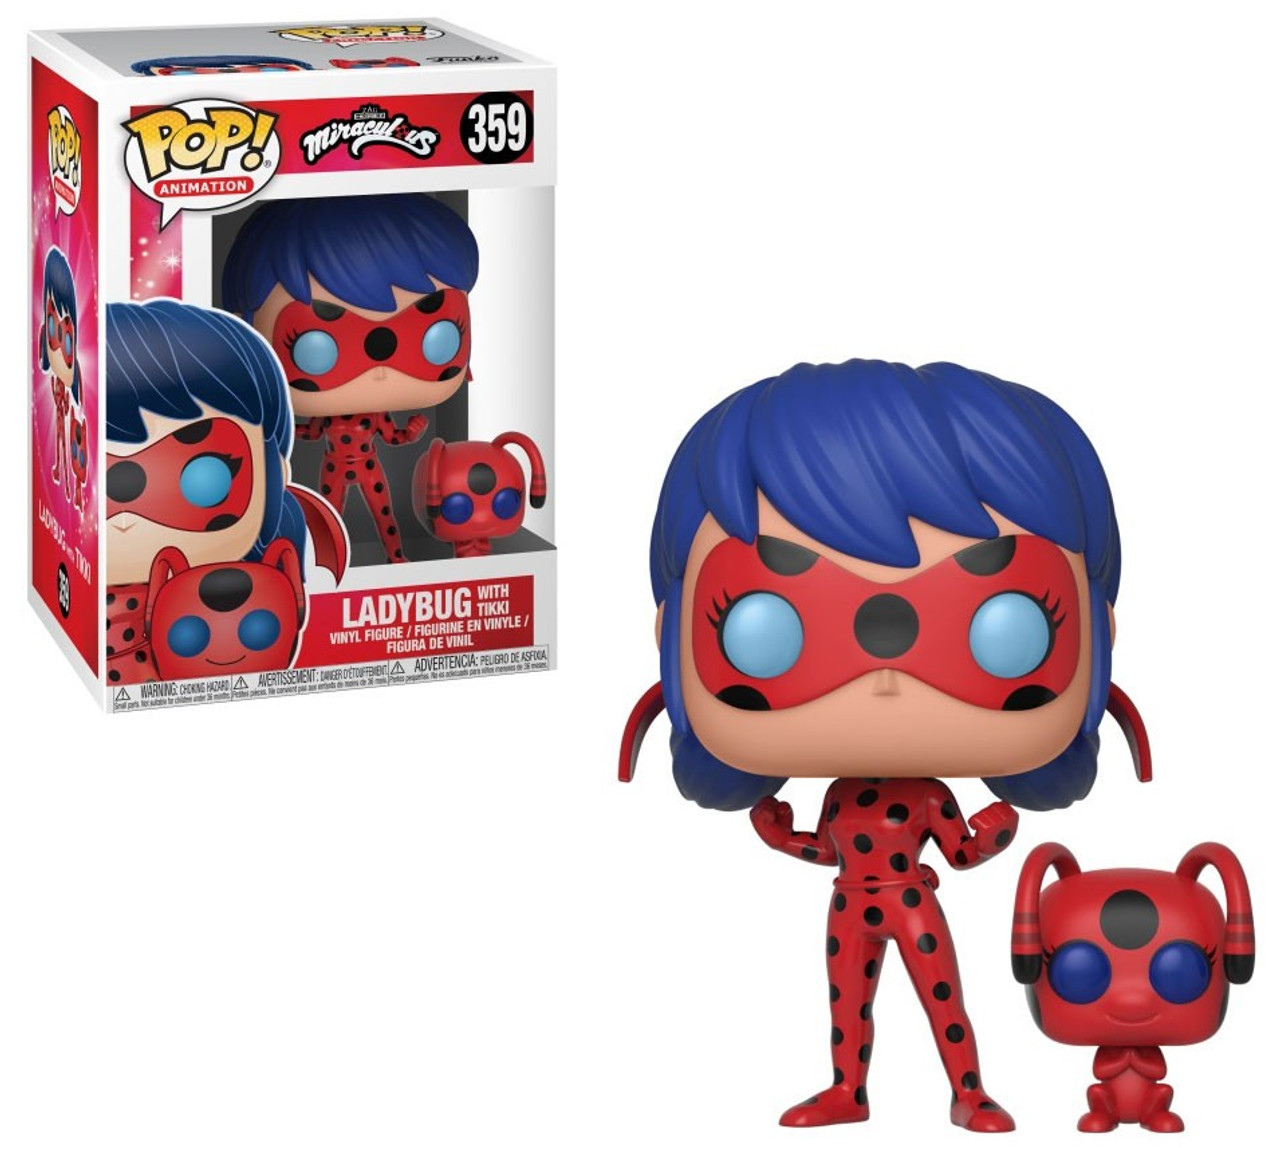 Miraculous-Cat Noir with Plagg Collectible Figure, Funko Pop and Buddy